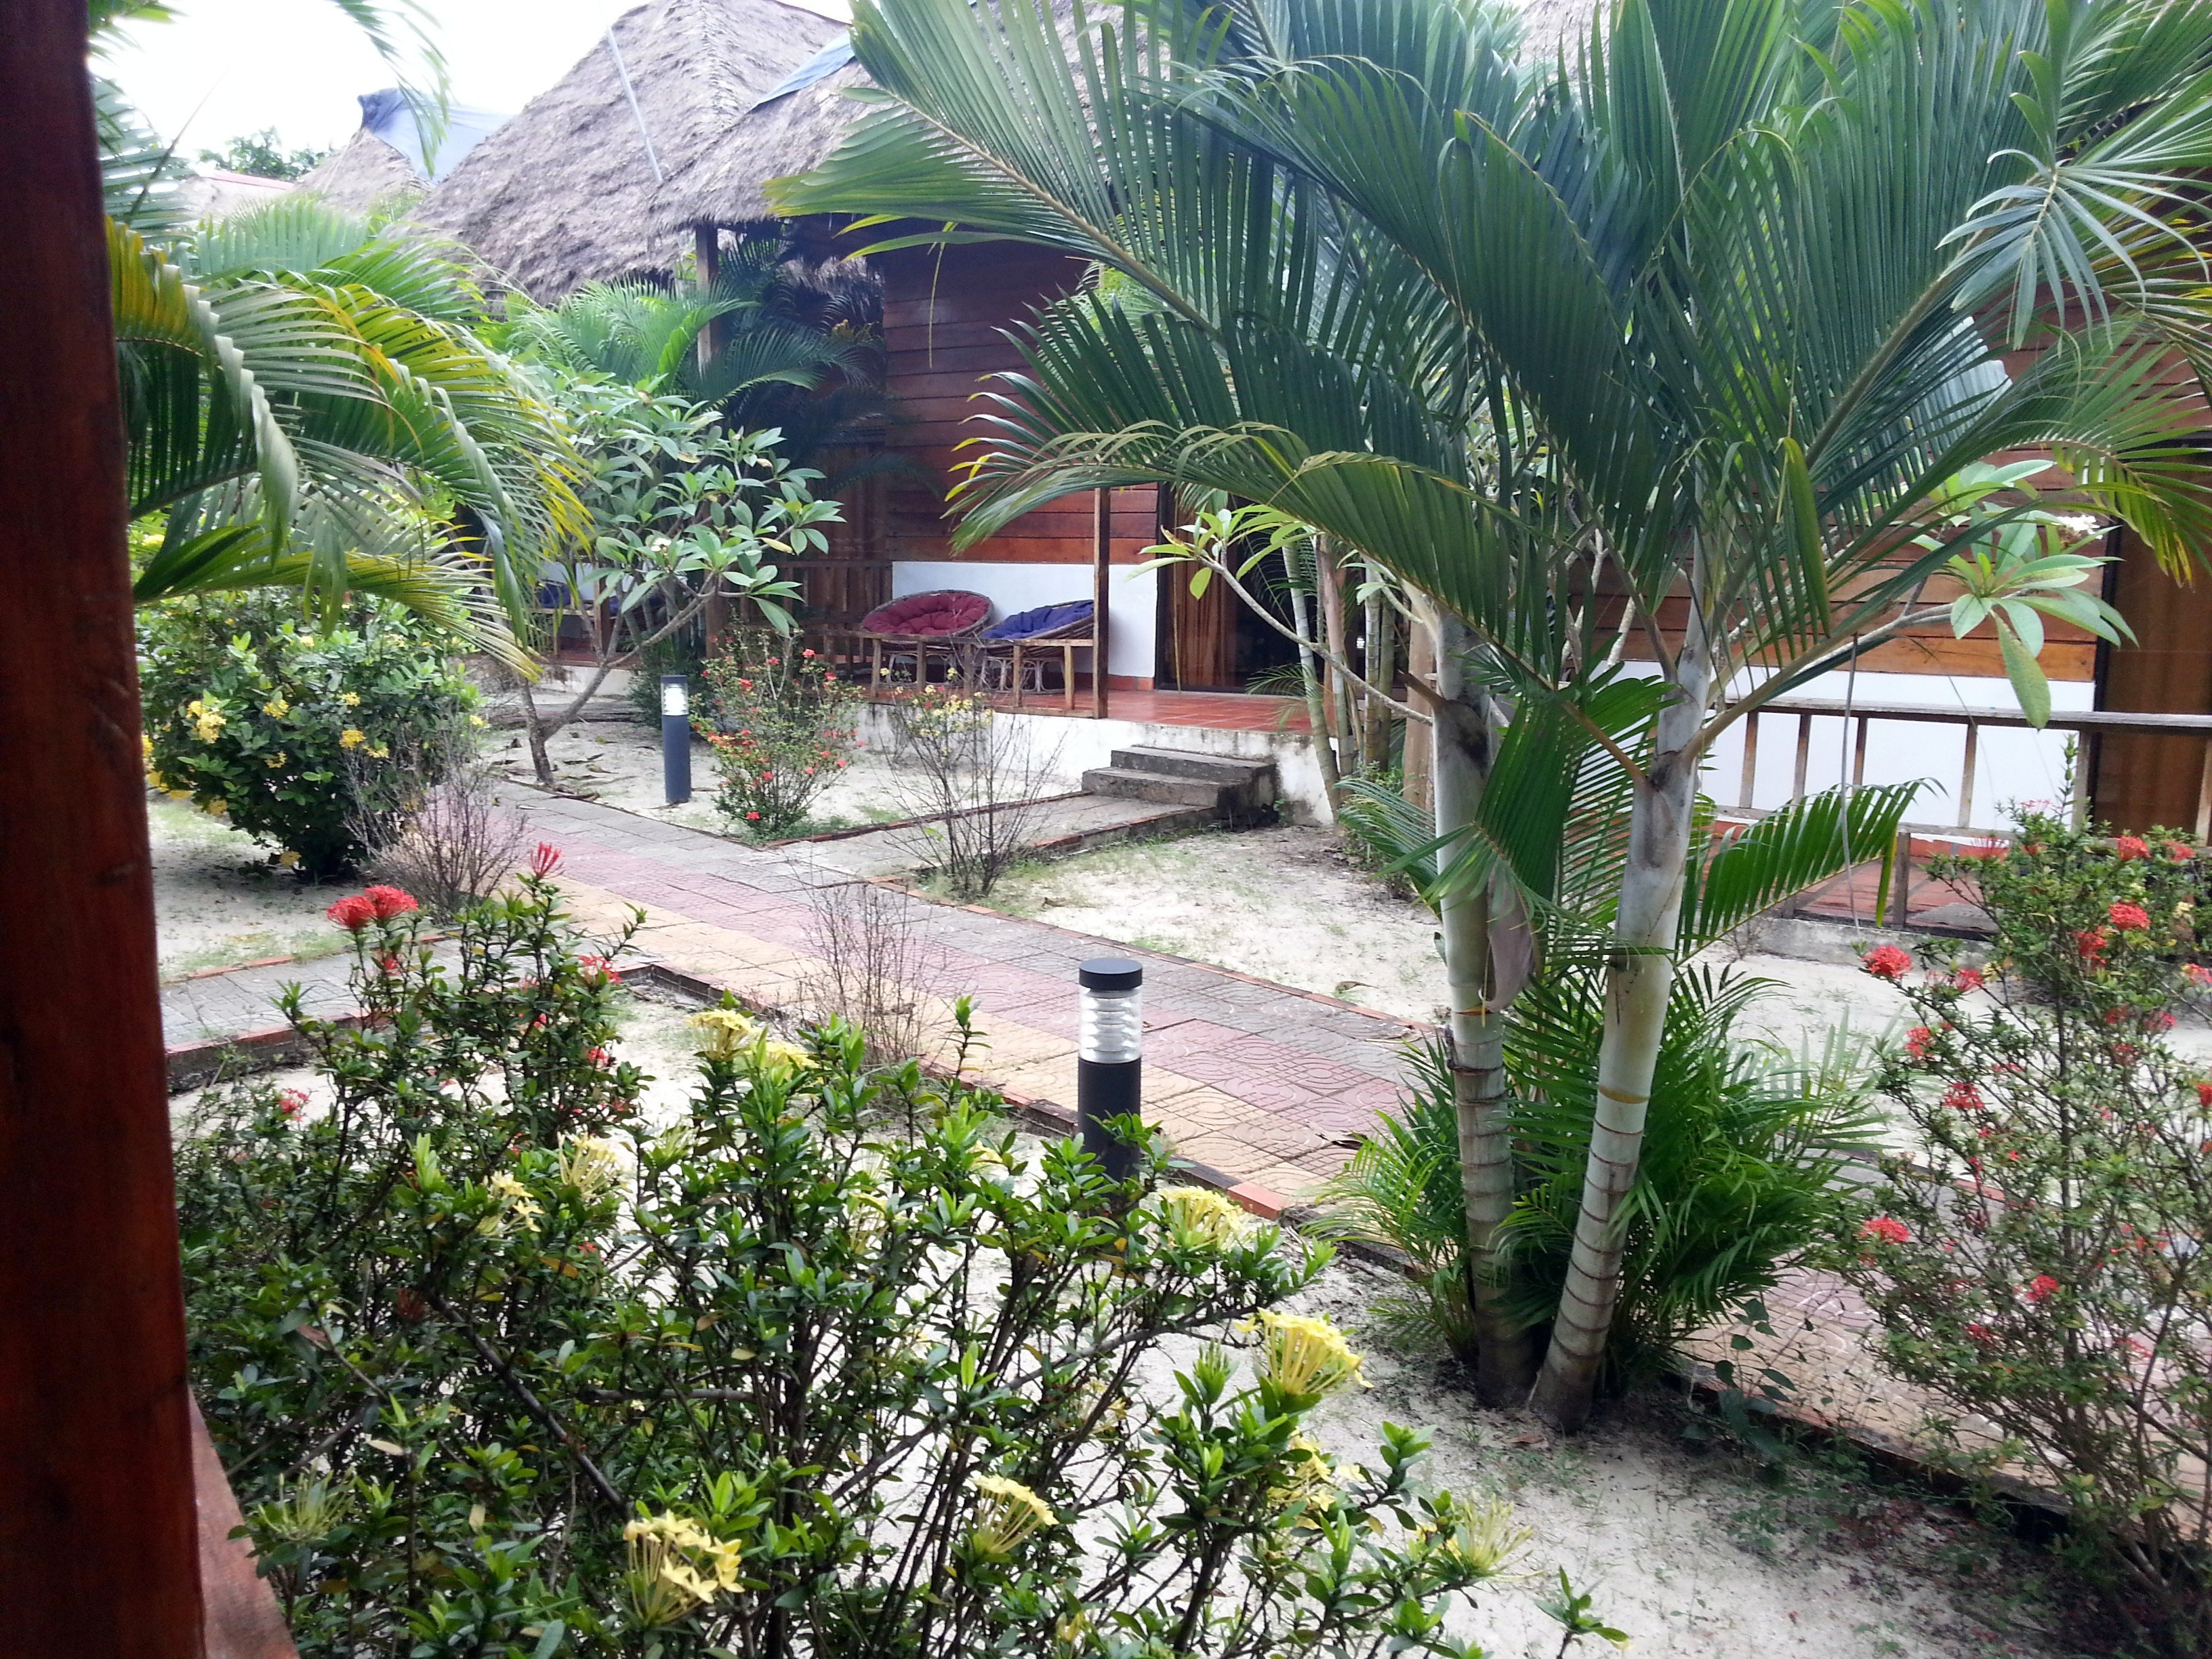 Garden at the Otres Lodge